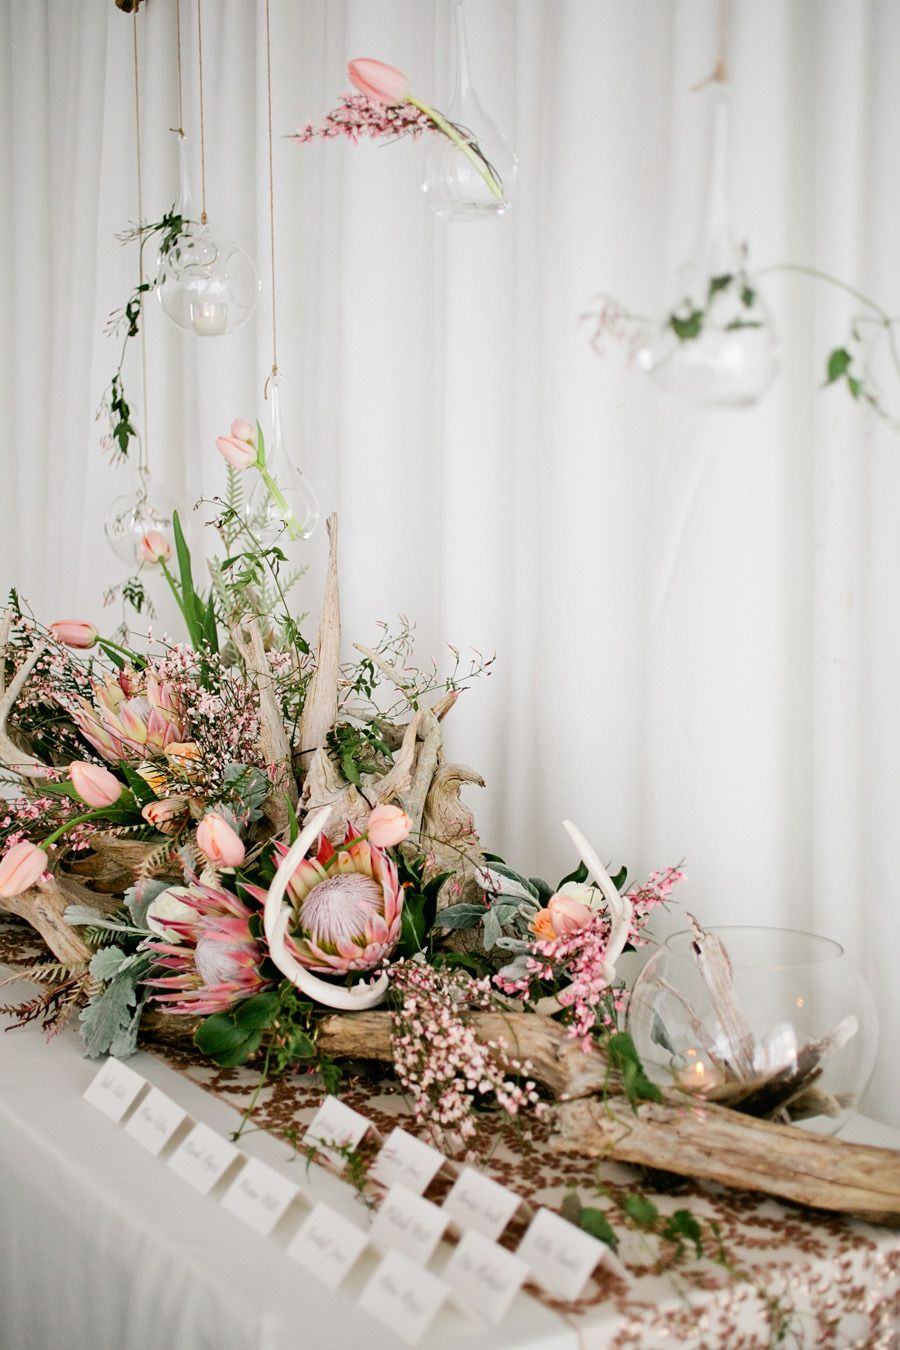 Driftwood Wedding Inspiration | Black books, Driftwood and Inspiration